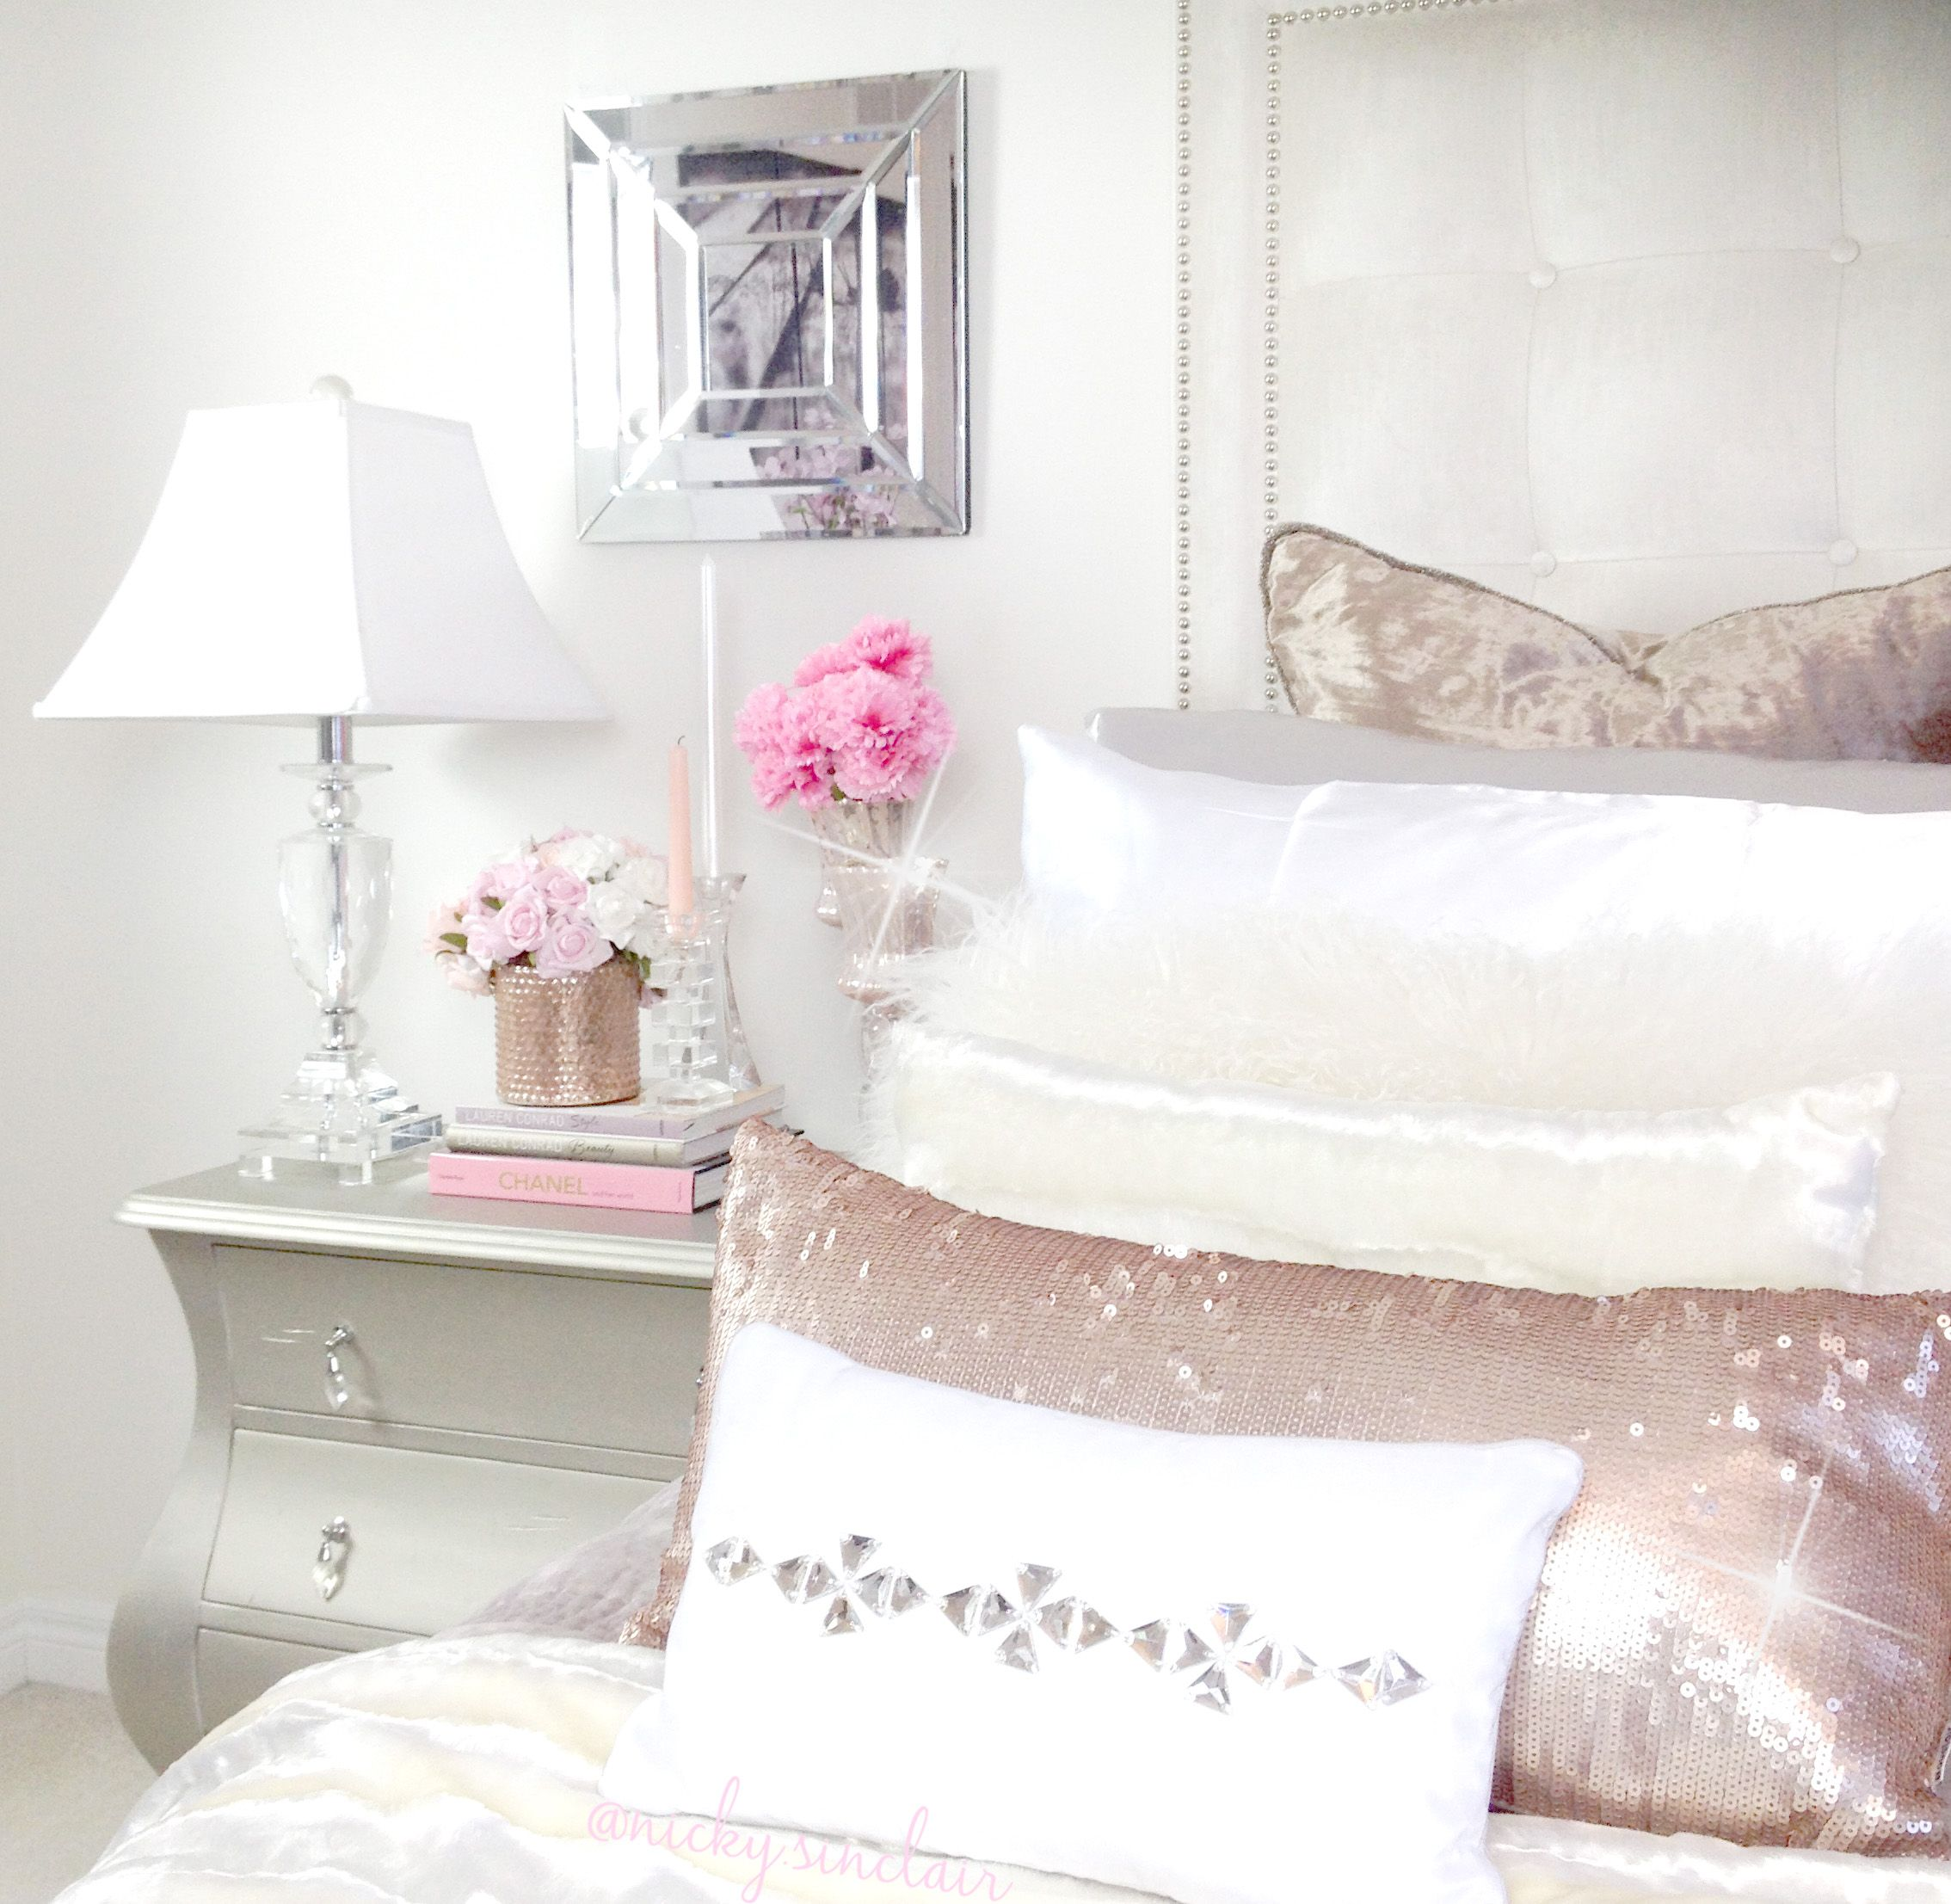 Feminine Glam Bedroom By Nicky Sinclair Via Ig - @